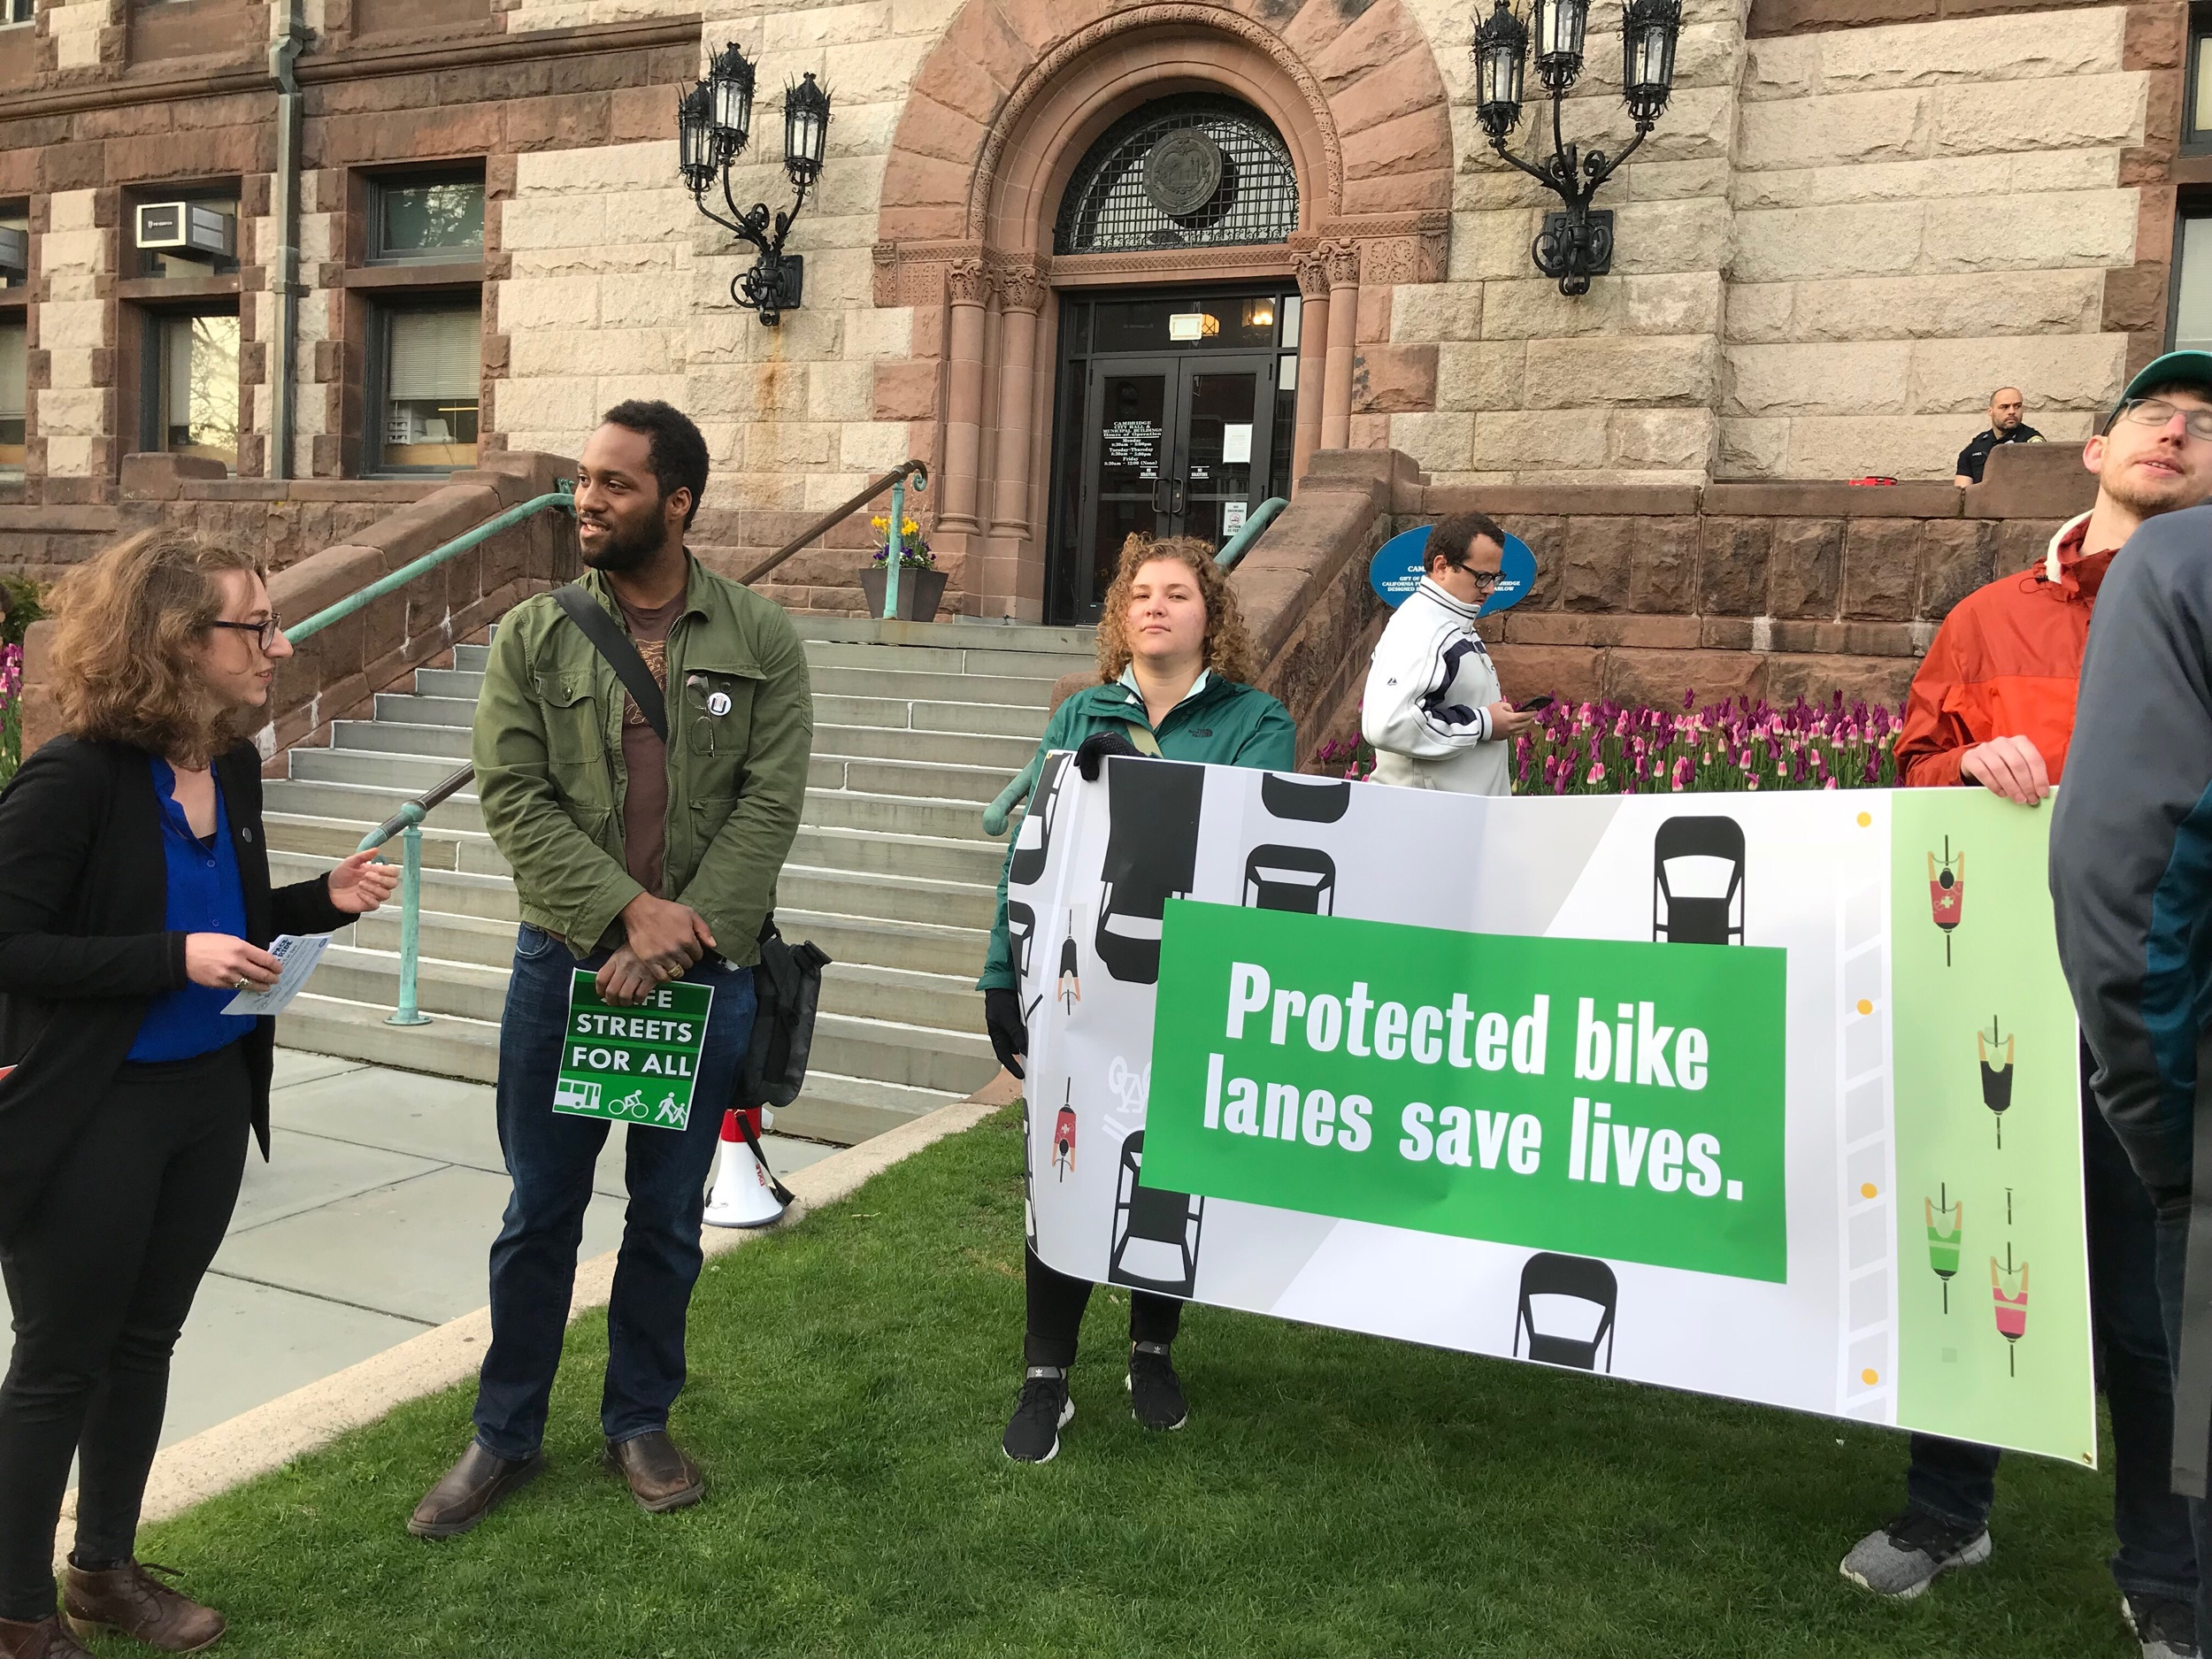 Bike safety rally - April 30th, 2019